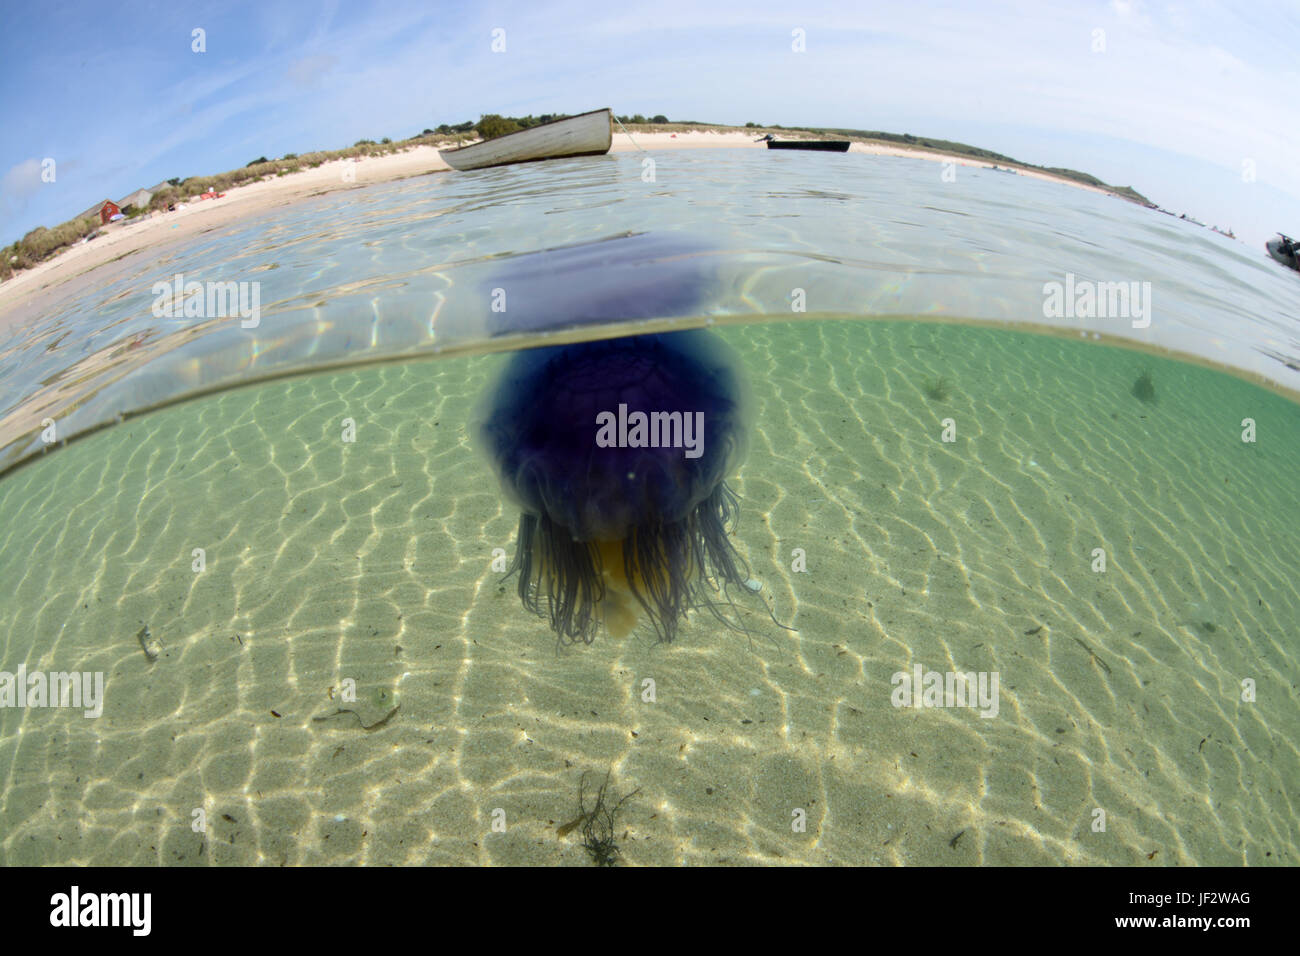 Blue jellyfish near a beach on St martins,Isles of Scilly - Stock Image